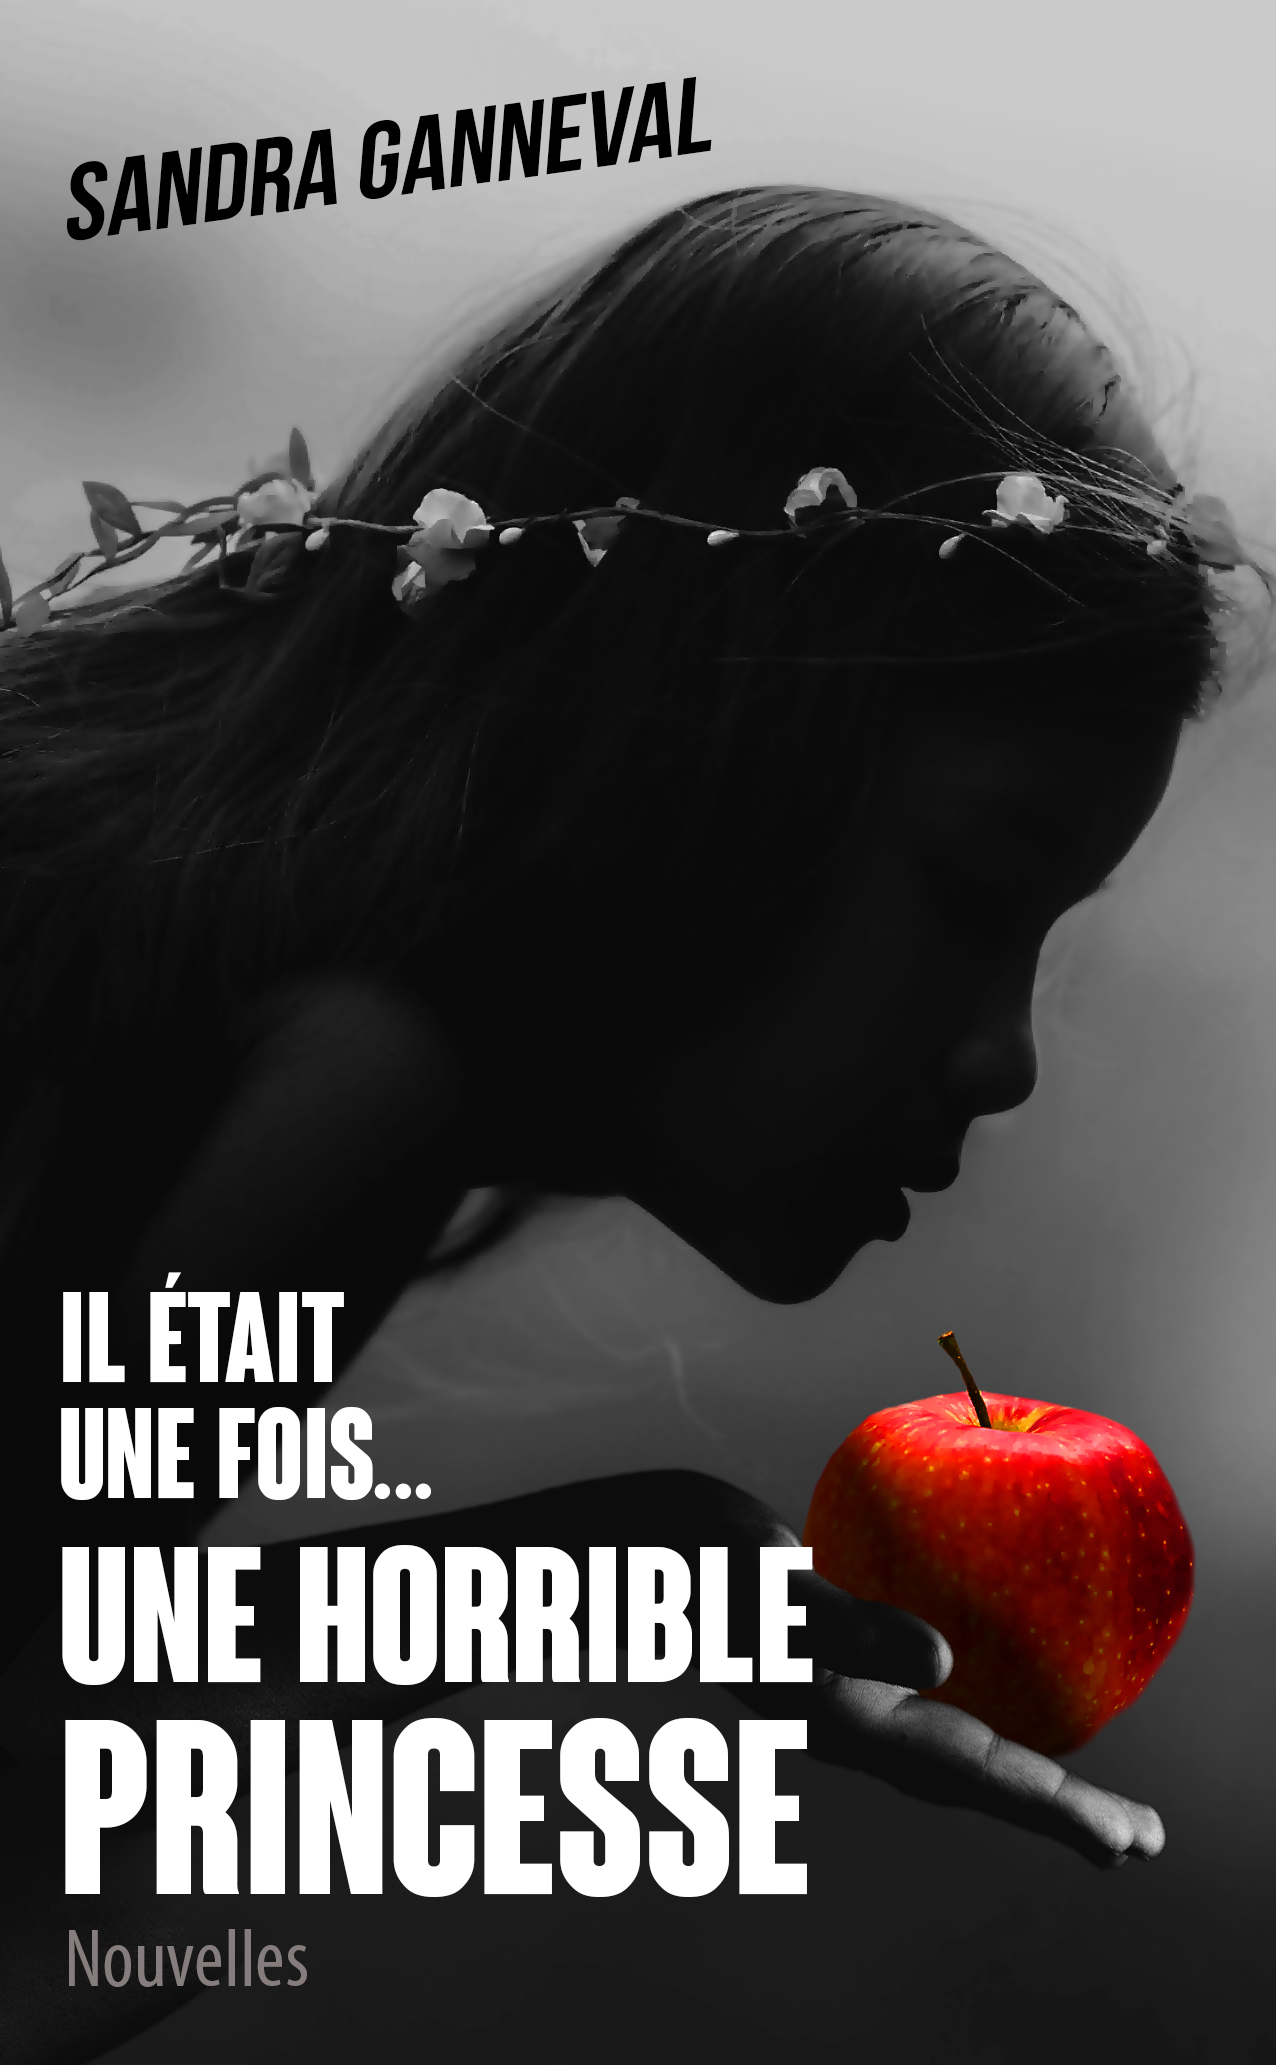 https://static.blog4ever.com/2011/05/490189/C1-Une-horrible-princesse-10-8x17-48.jpg